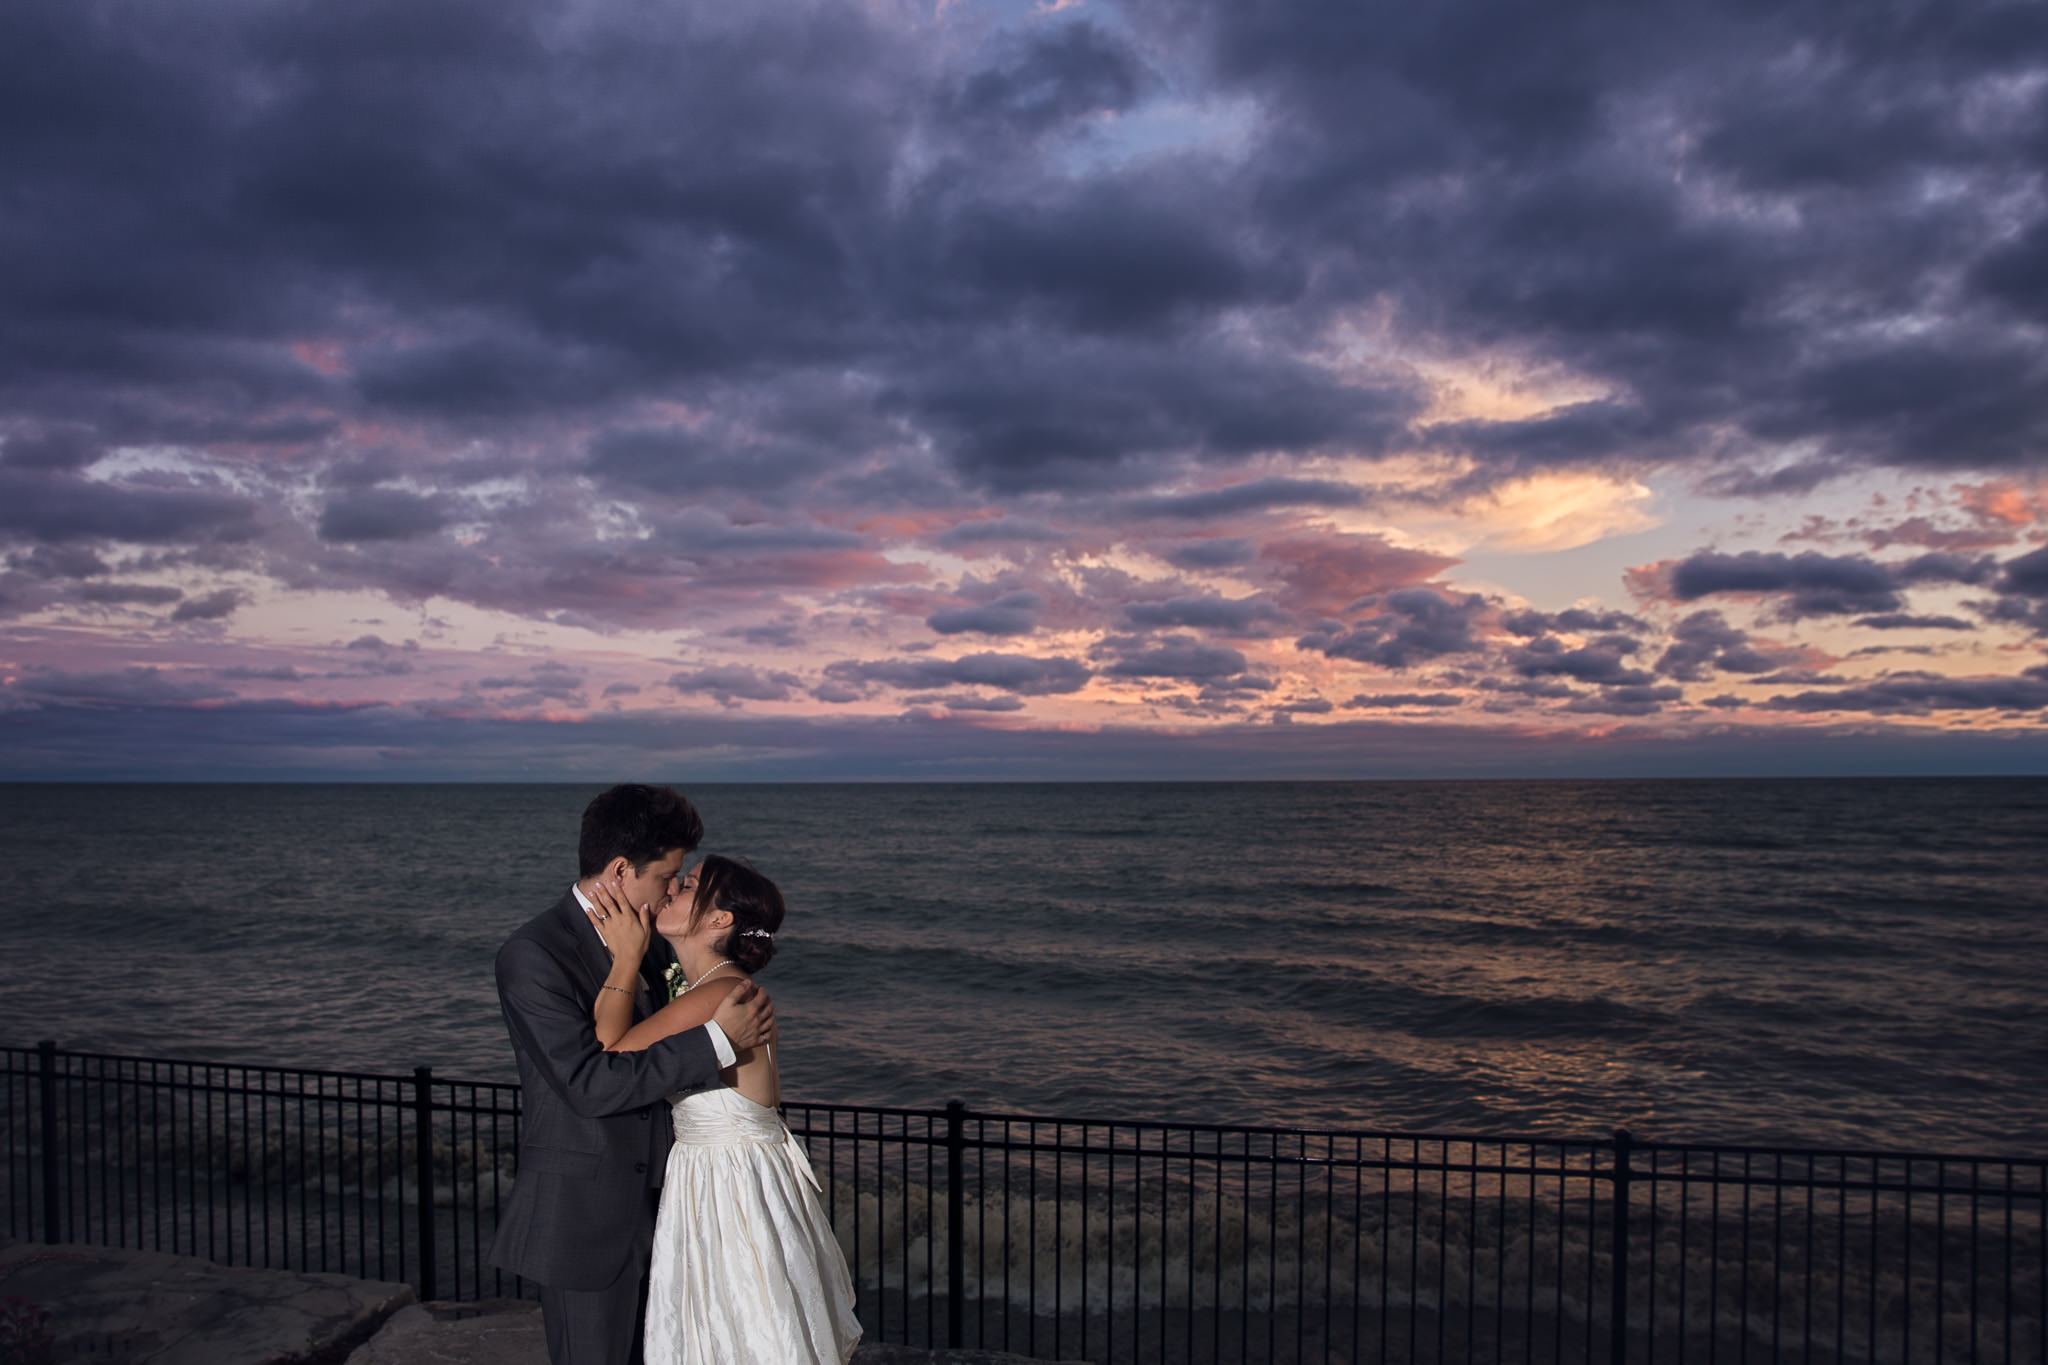 newlywed couple kissing with beautiful sunset sky by lake ontario